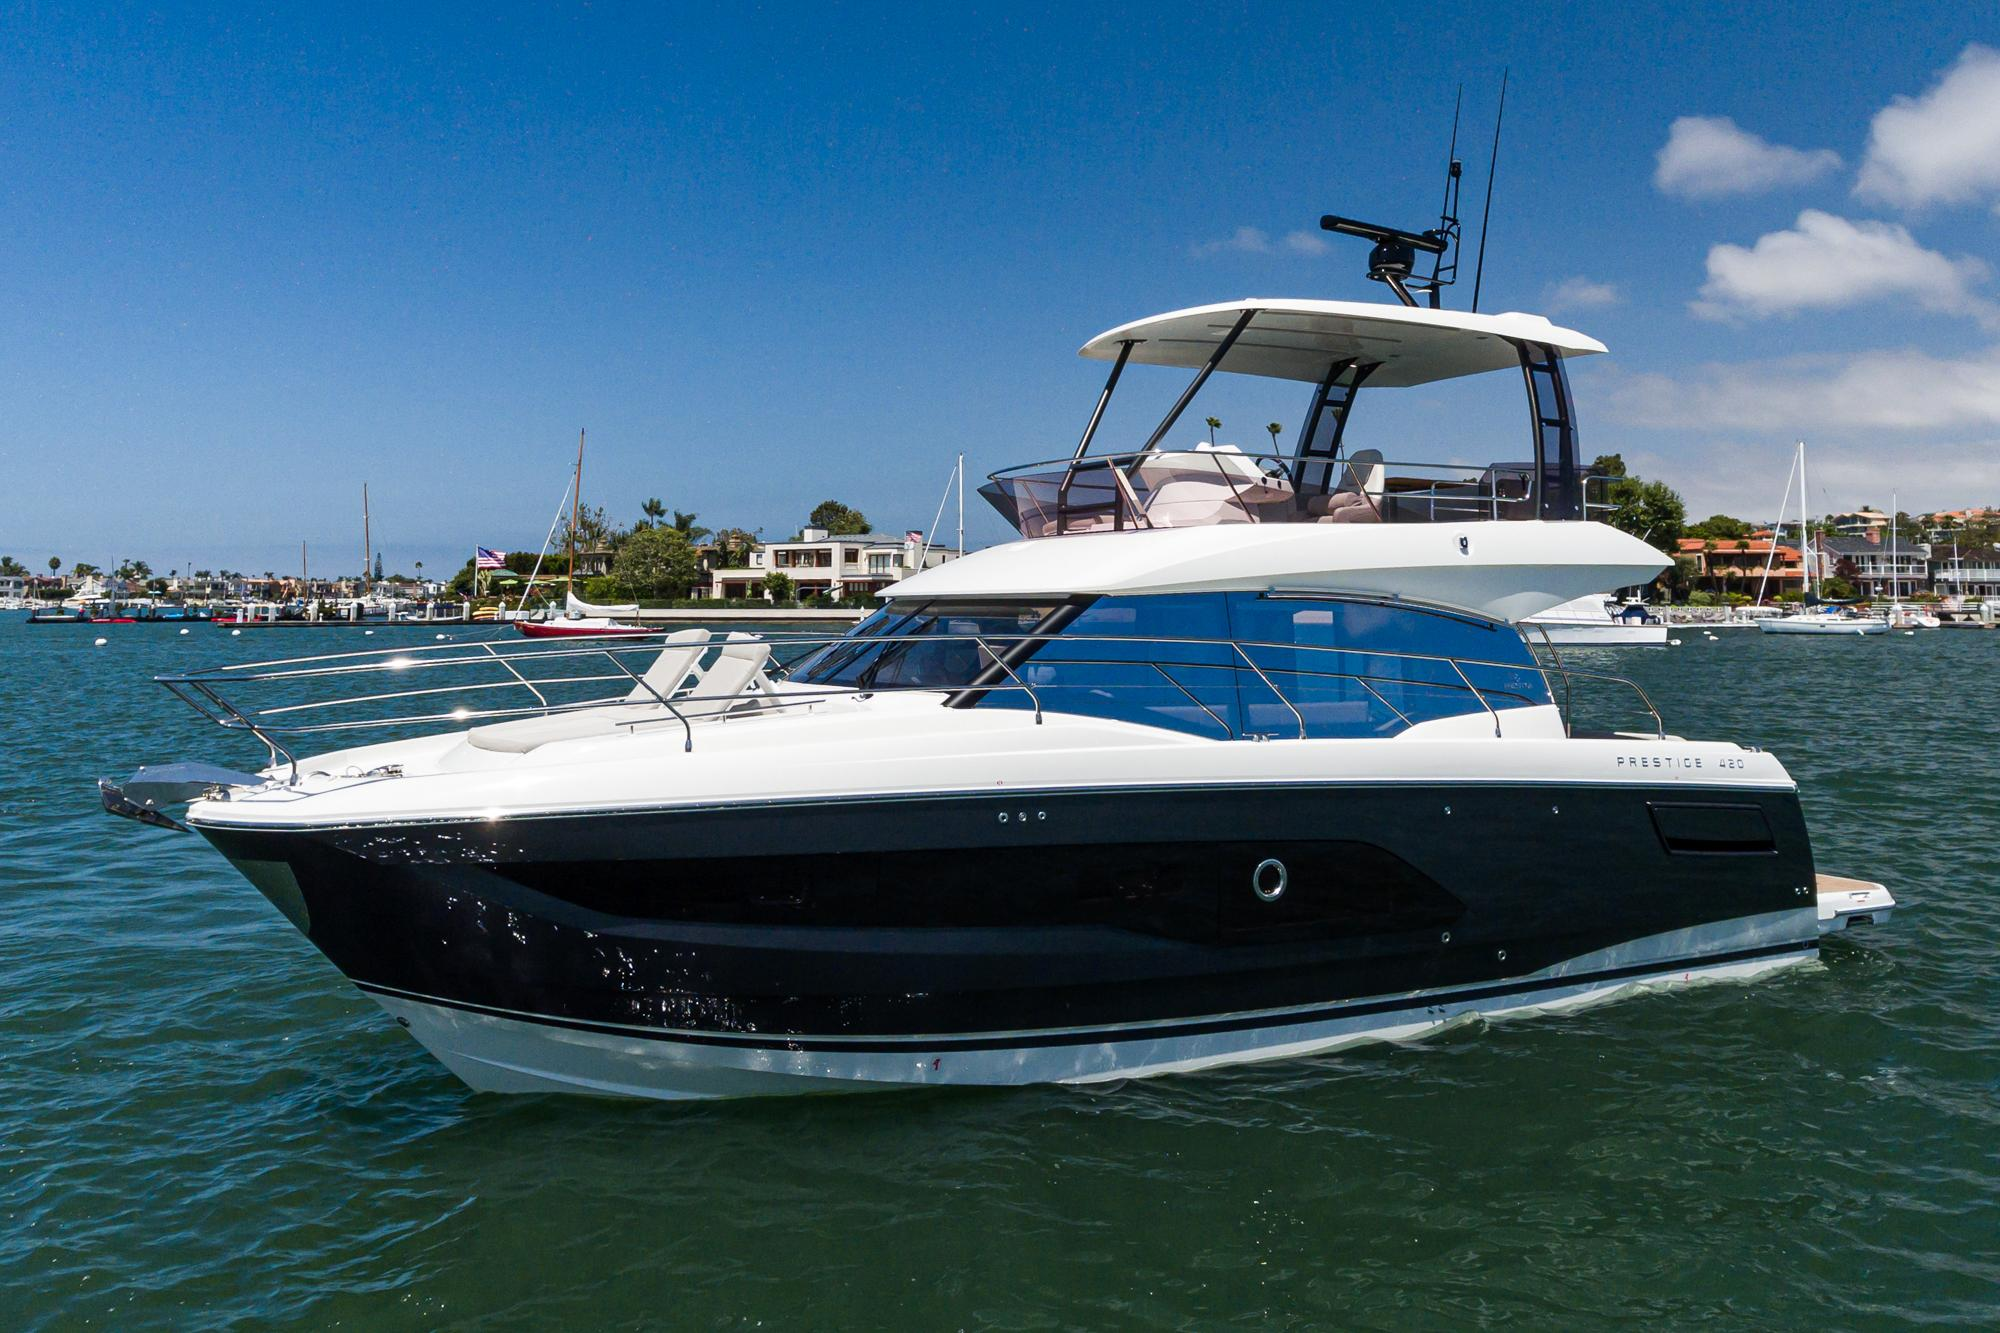 2021 Prestige 420 Fly #PR034F inventory image at Sun Country Coastal in San Diego